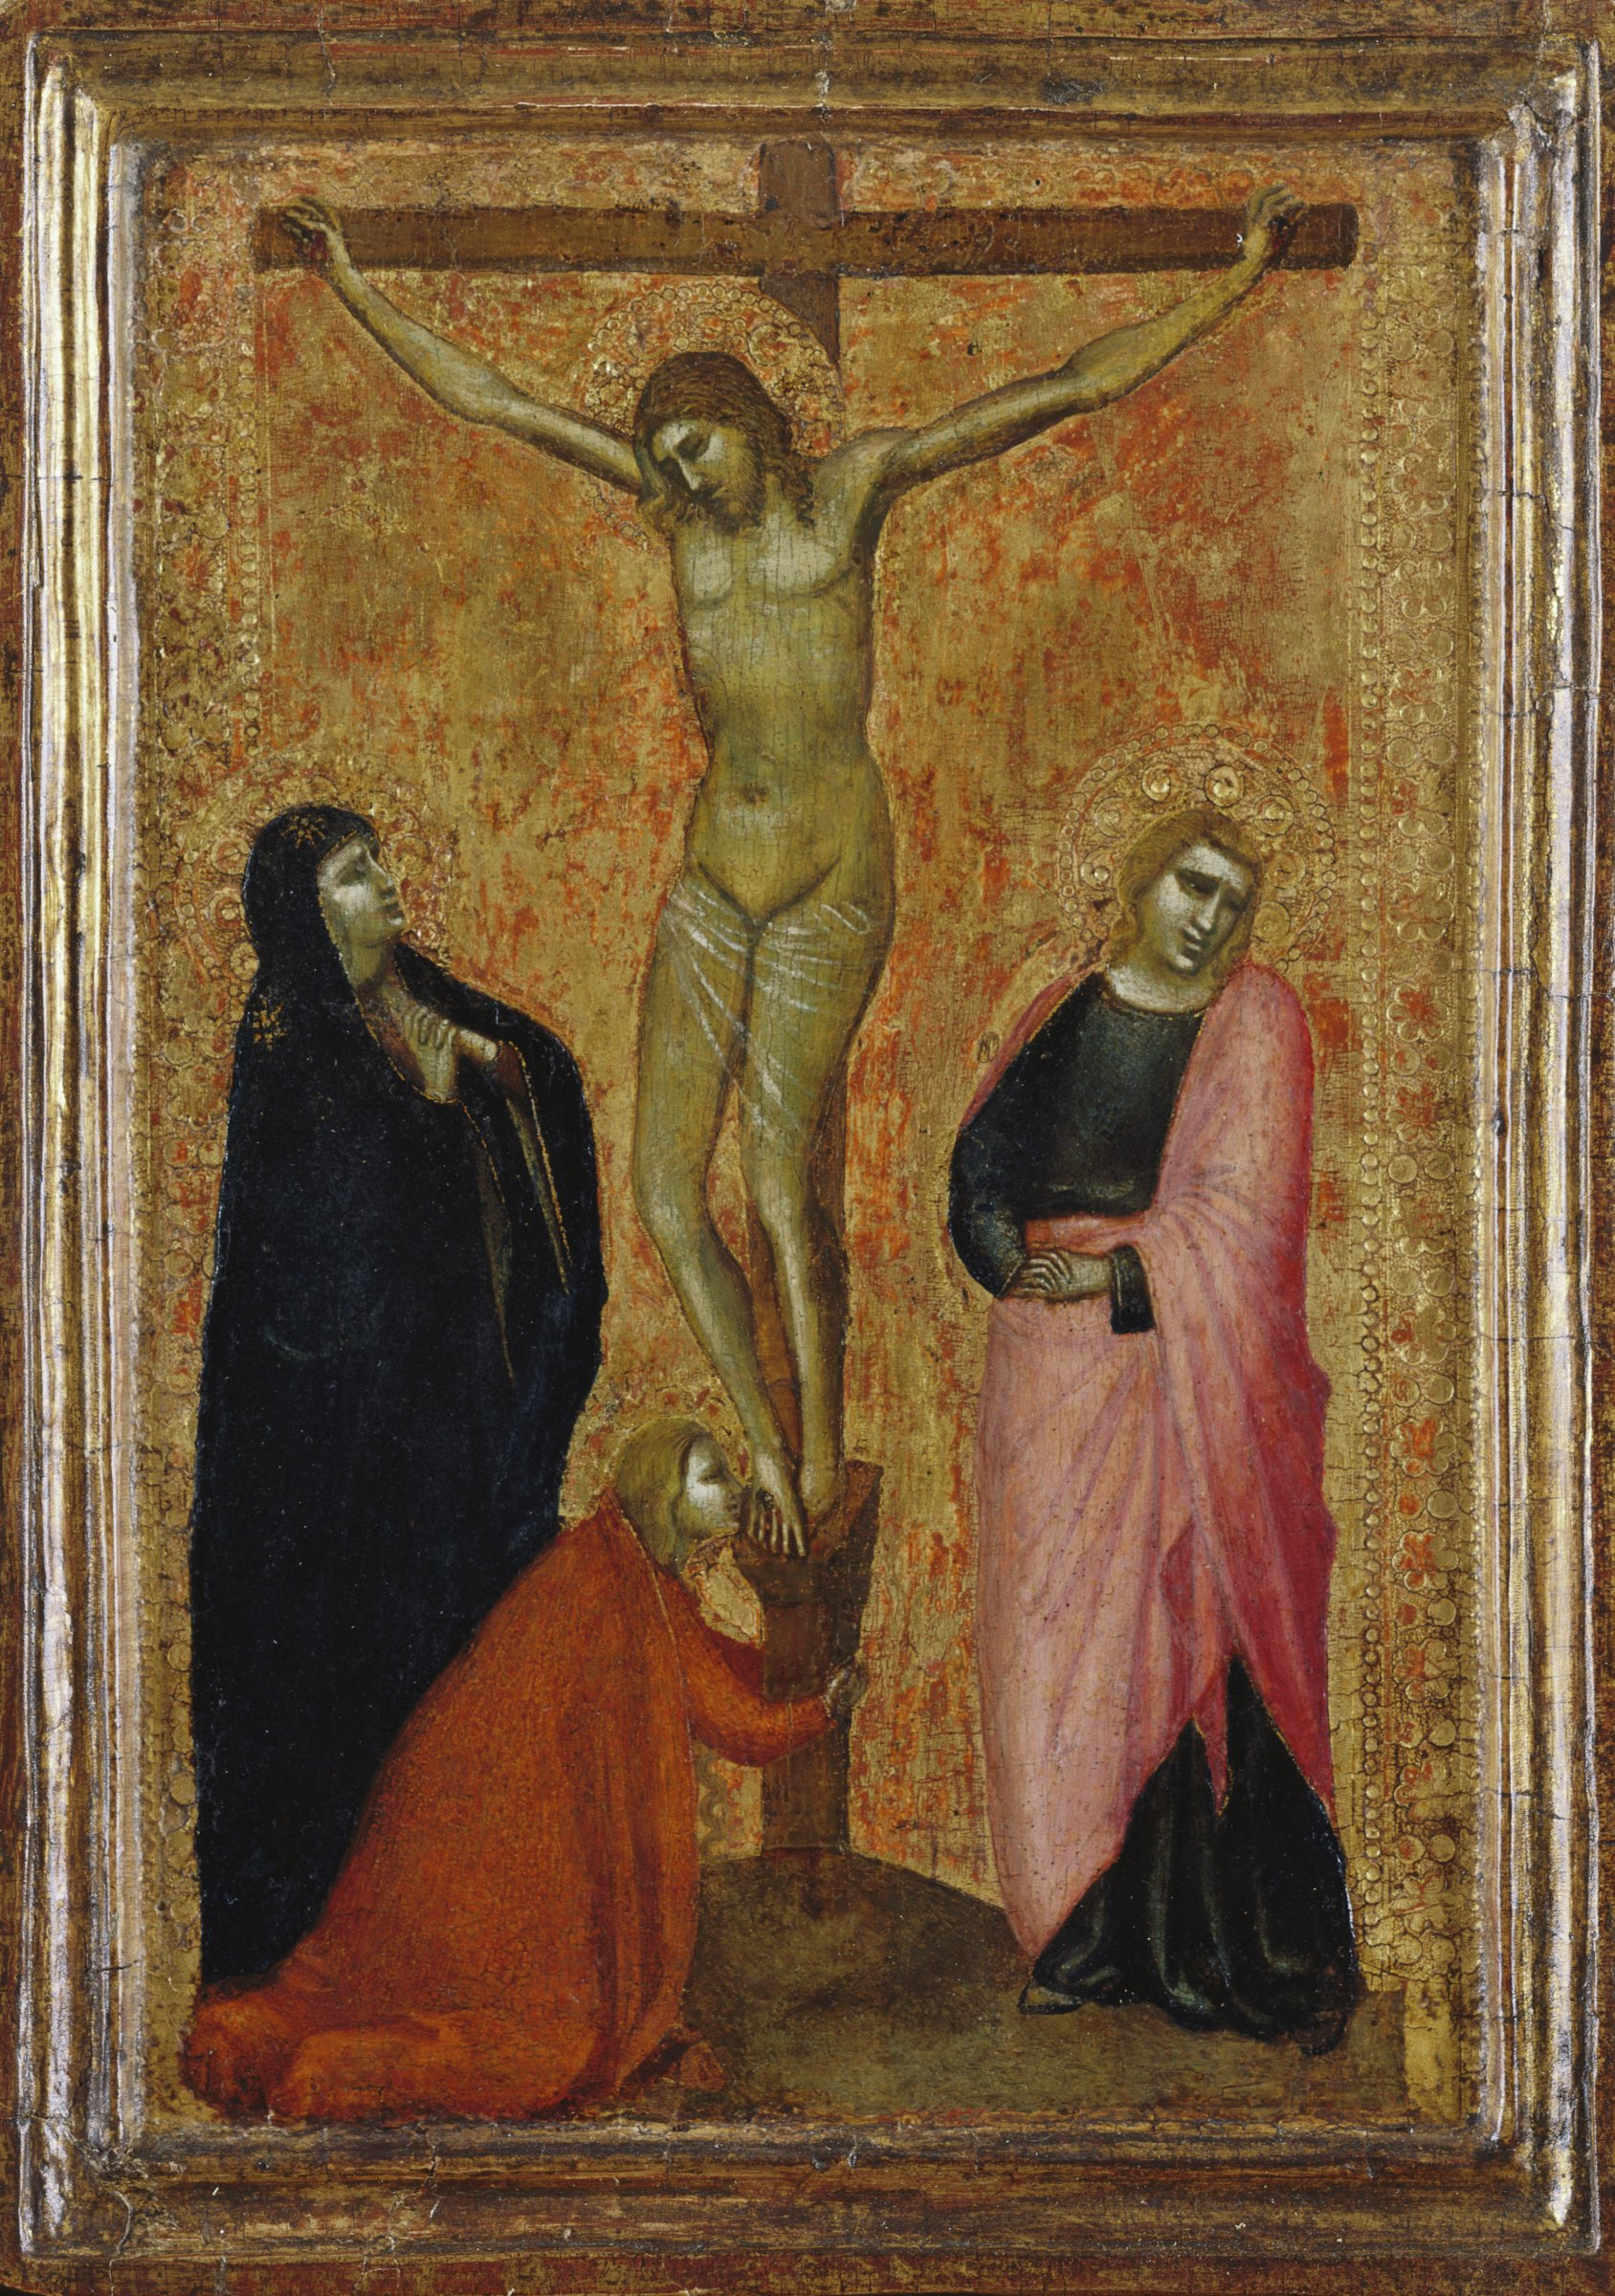 In the center of the panel, Christ is shown crucified on the cross. Mary Magdalene kneels at his feet and kisses them. His mother Mary mourns on the left and St. John the Evangelist on the right.